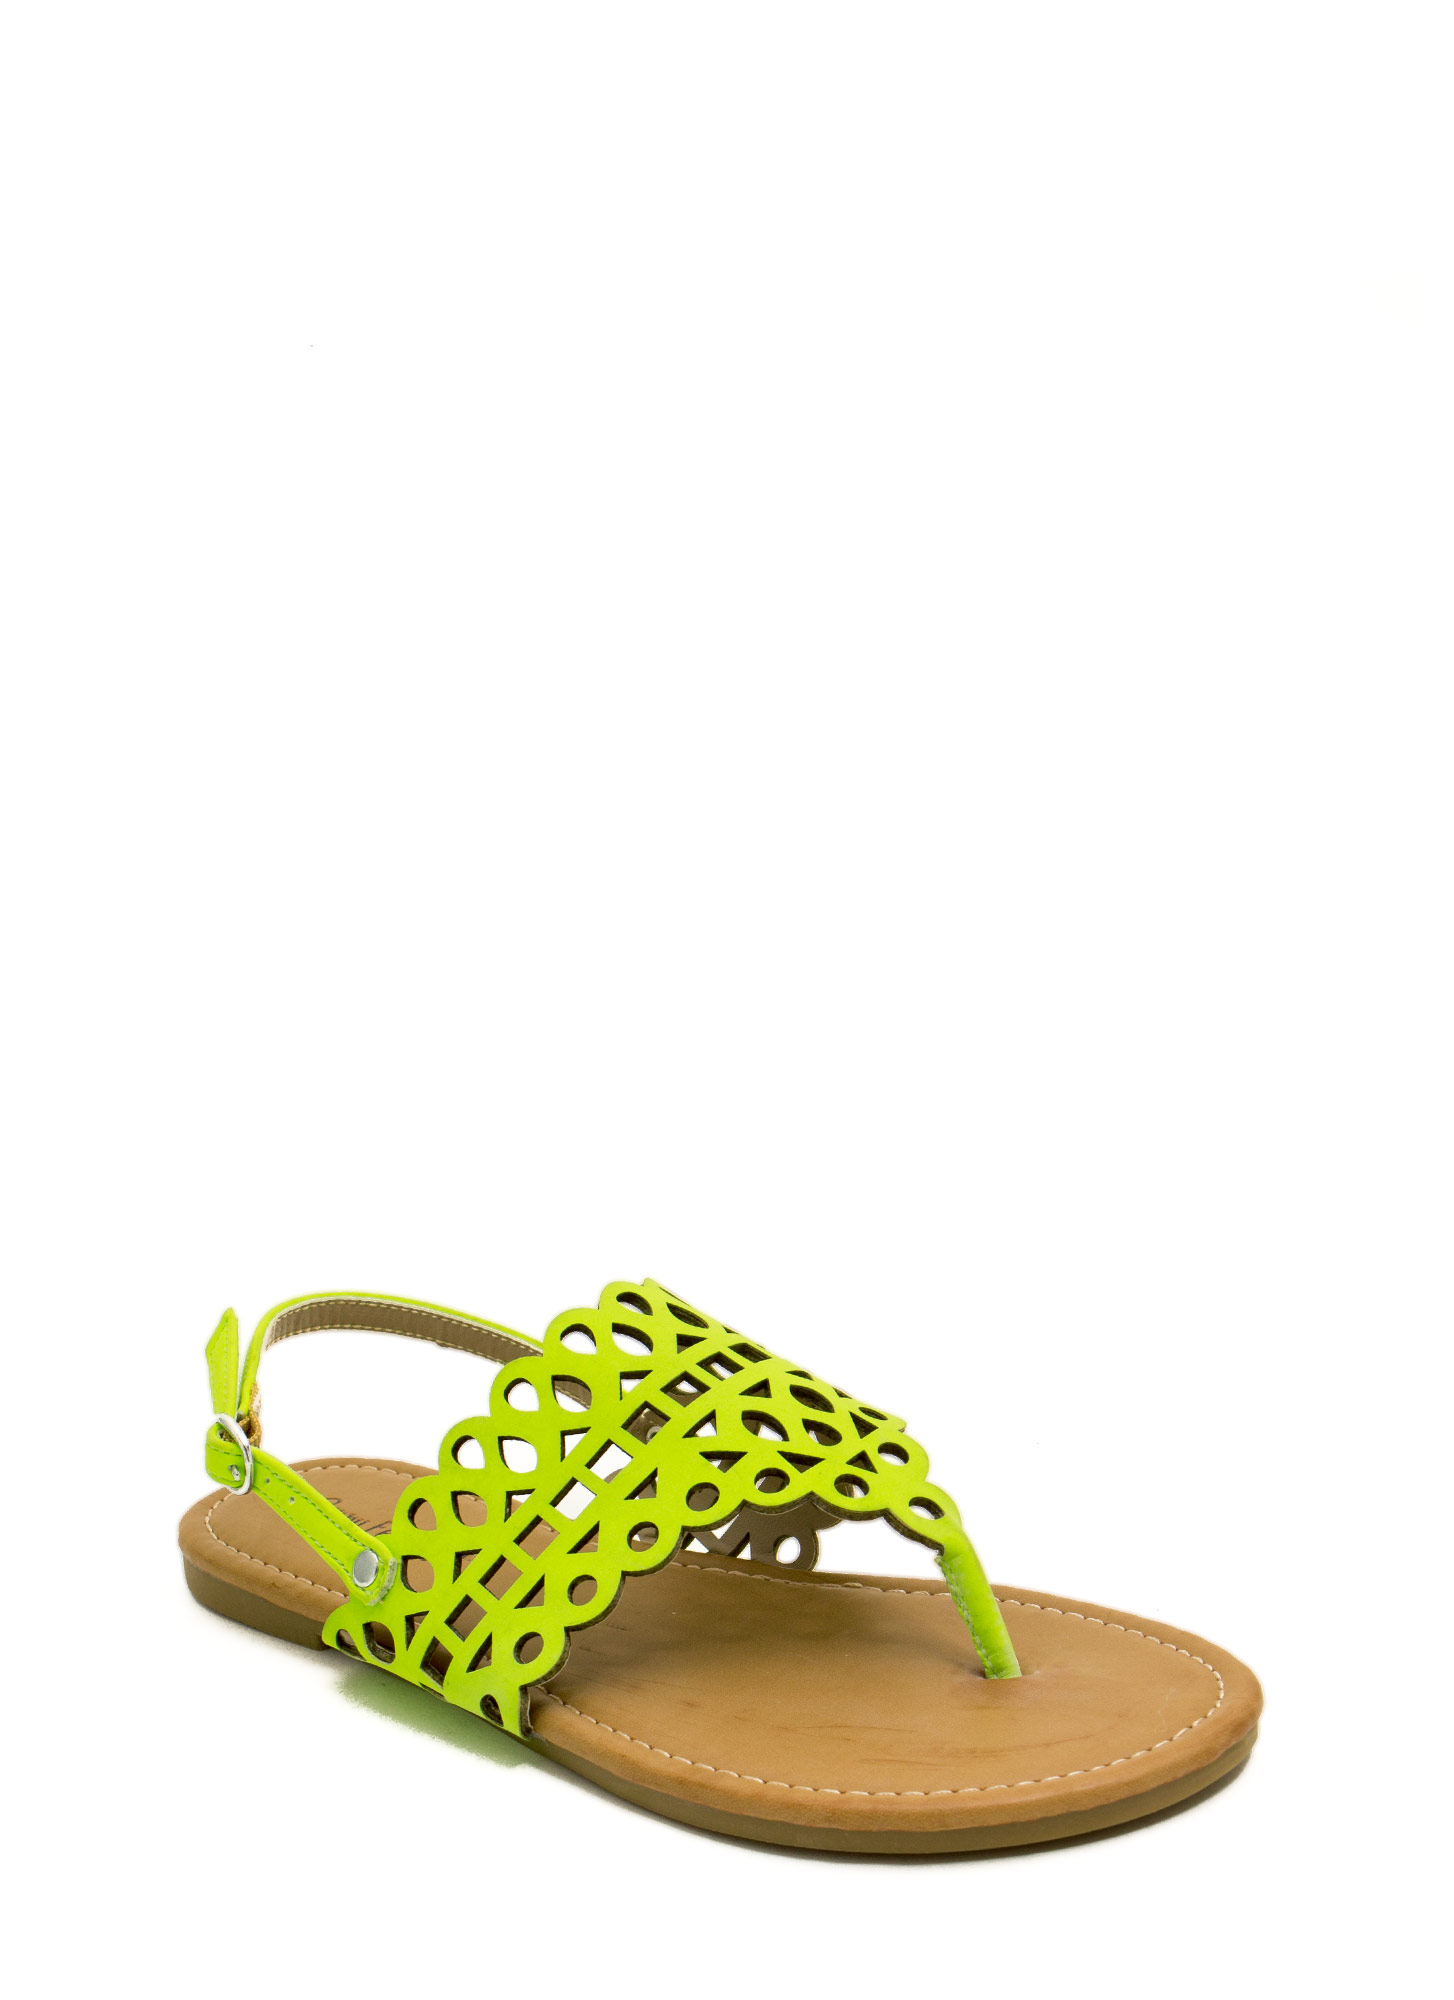 Made The Cut-Out Thong Sandals NEONLIME